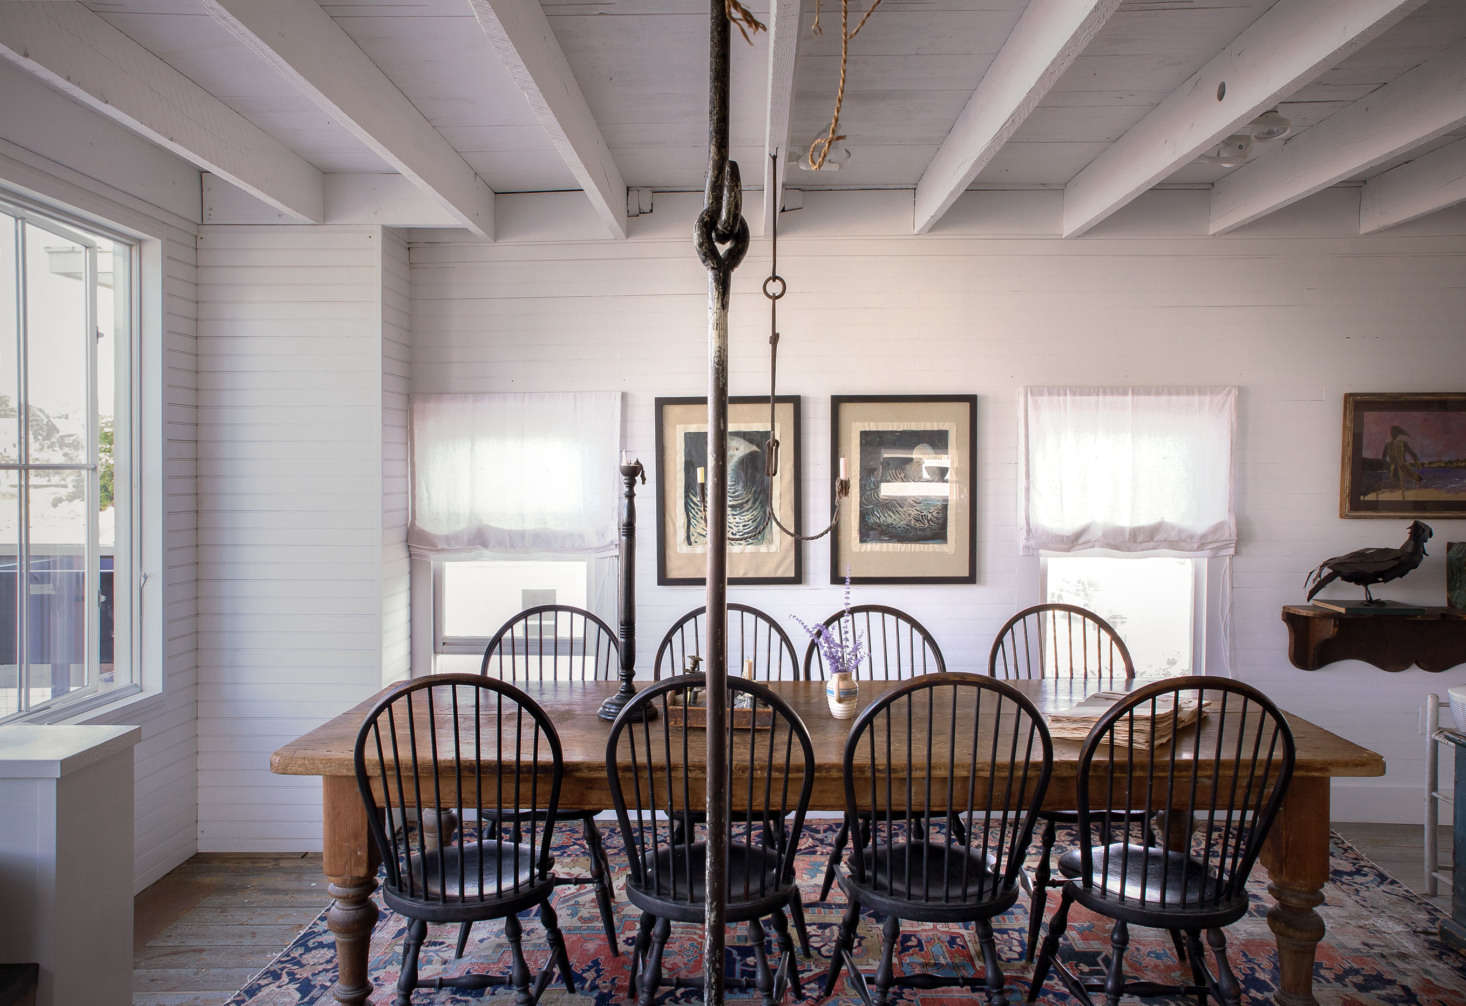 For dining, the couple uses a th-century English library table surrounded by reproduction Windsors found at ABC Carpet & Home. The trammel is an American piece, circa 70, found in New Hampshire in the early 90s.